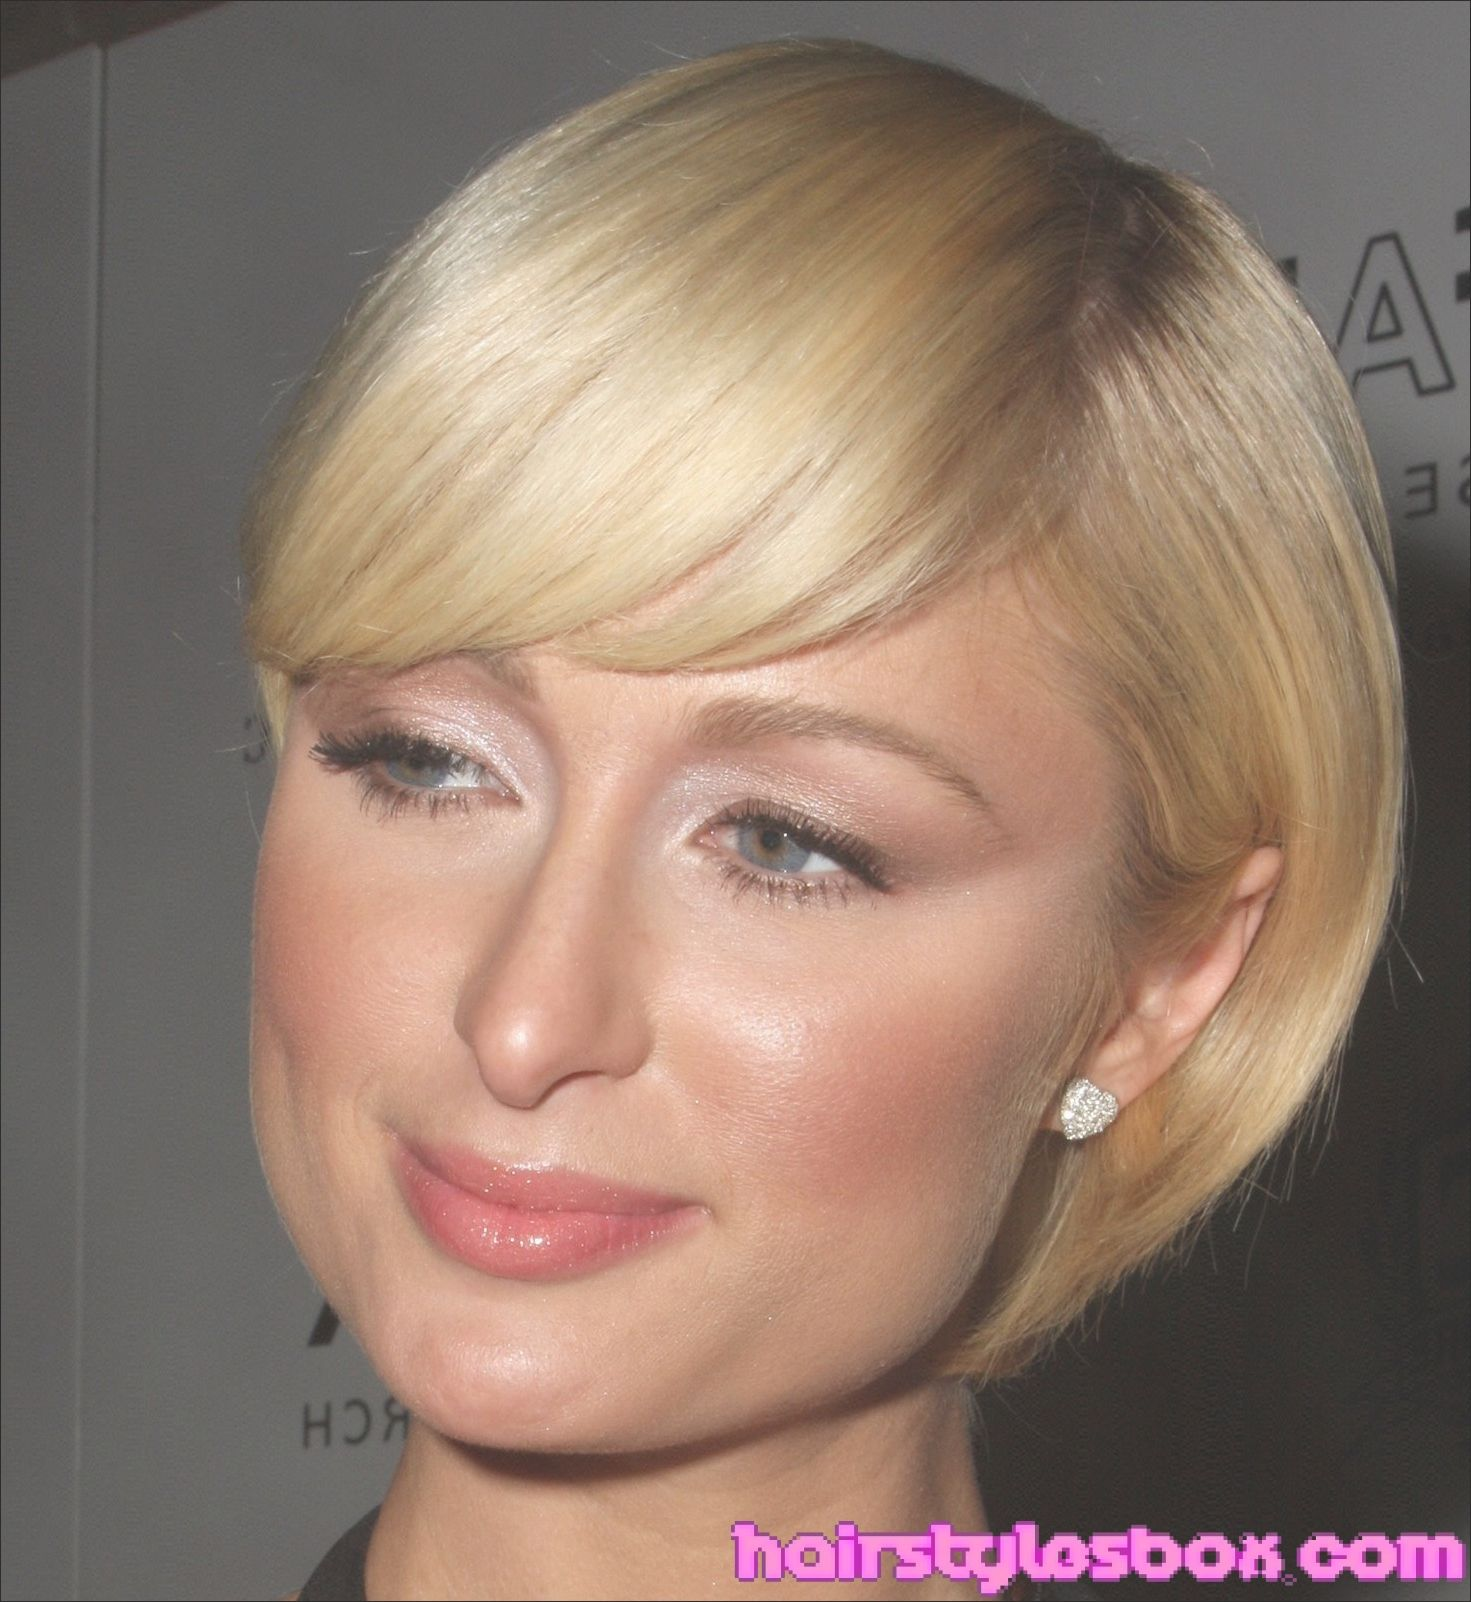 Paris Hilton Hairstyles Haircut Styles And Blondes